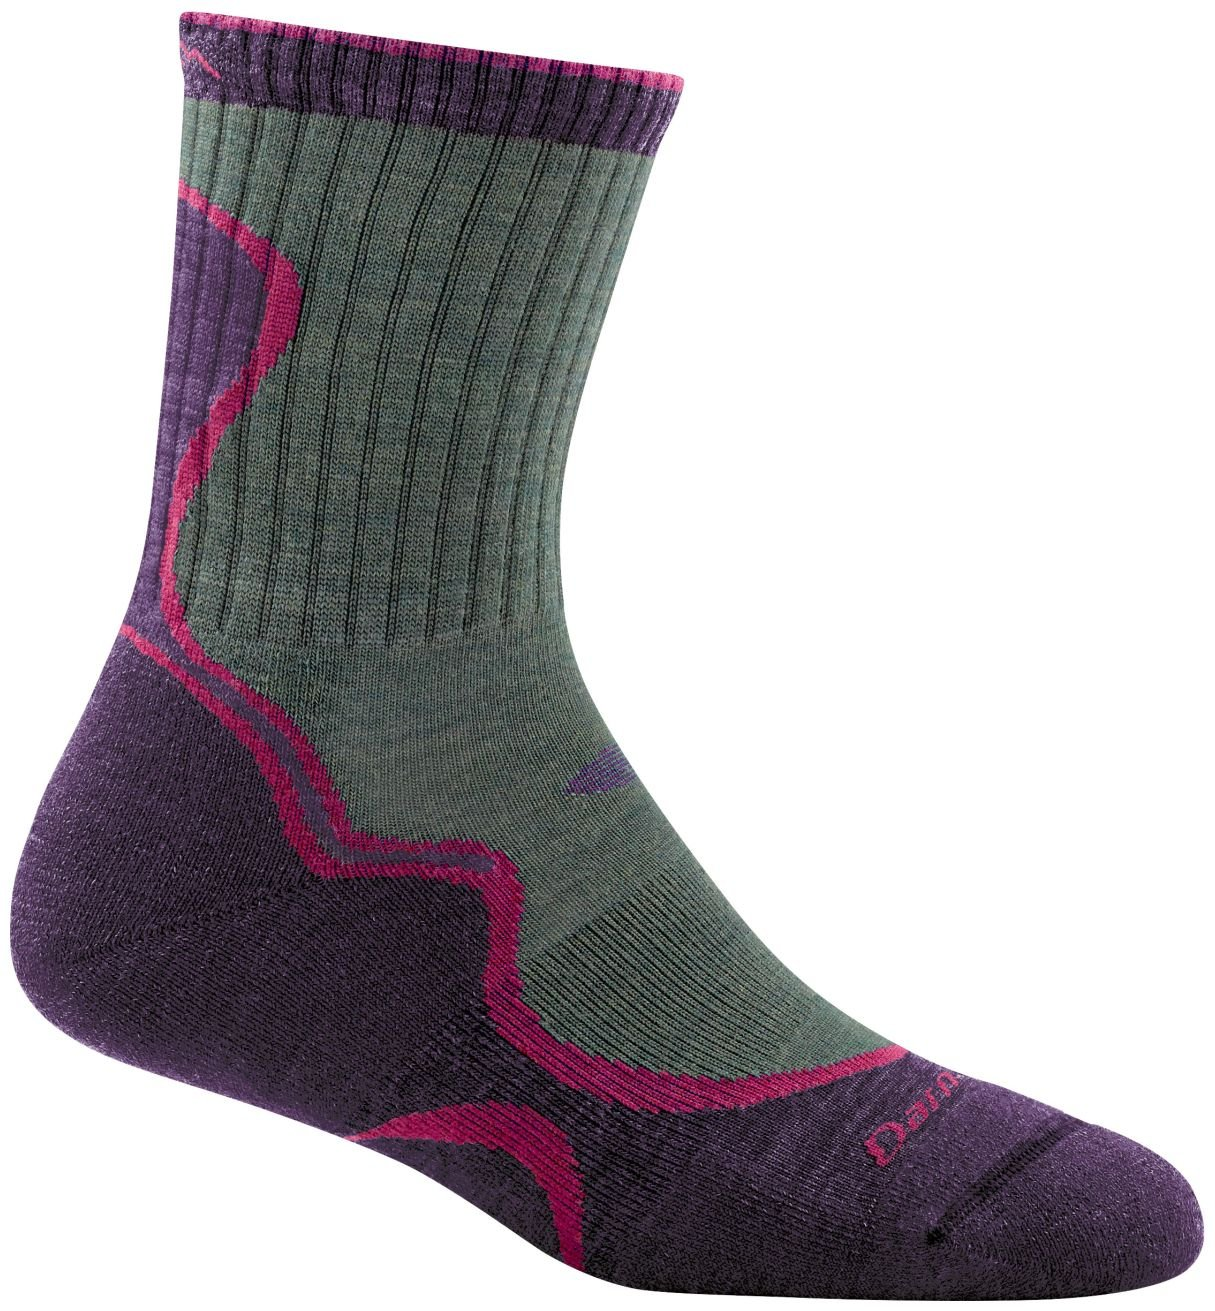 Darn Tough Light Hiker Micro Crew Light Cushion Socks - Women's Moss/Eggplant Large